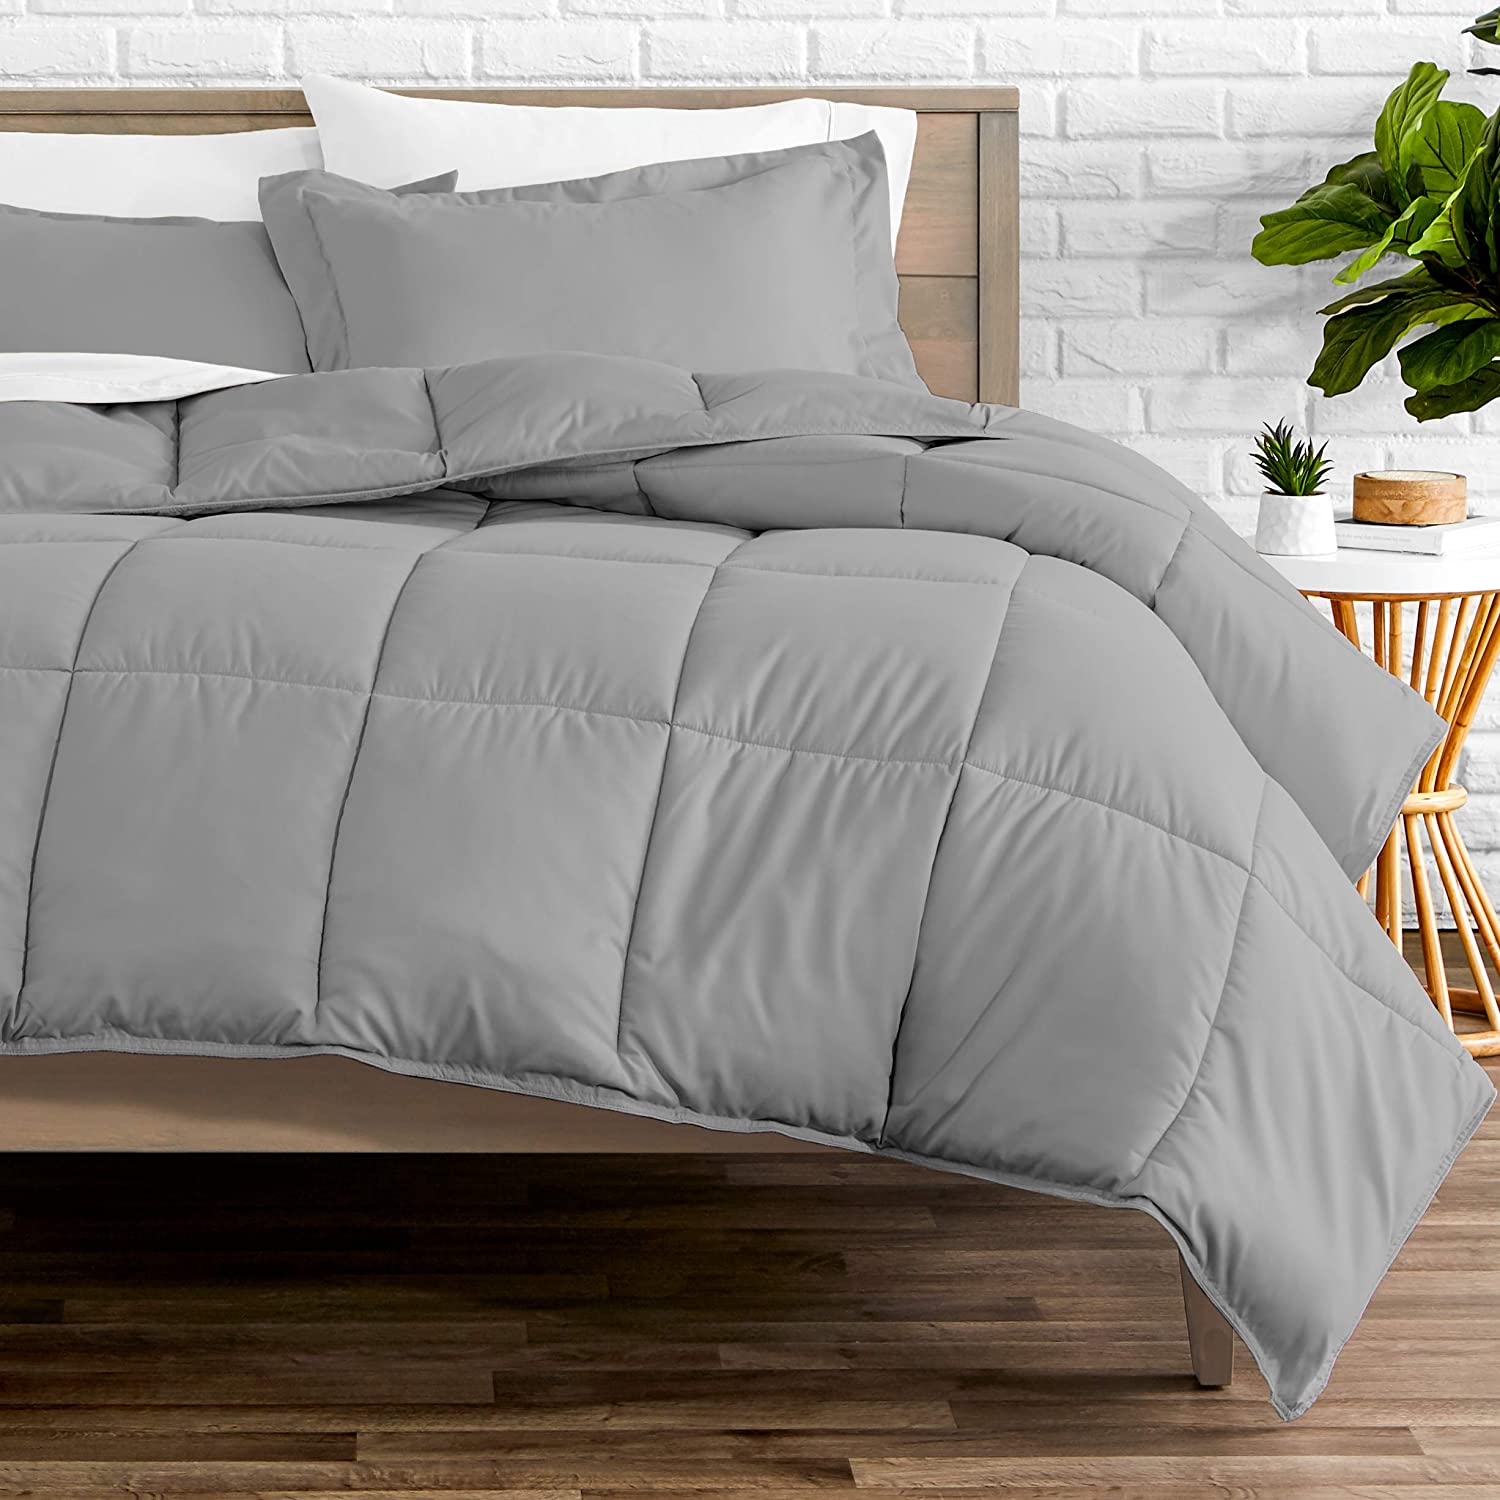 Bare Home Comforter Set - Queen Size - Goose Down Alternative - Ultra-Soft - Premium 1800 Series - Hypoallergenic - All Season Breathable Warmth (Queen, Light Grey)